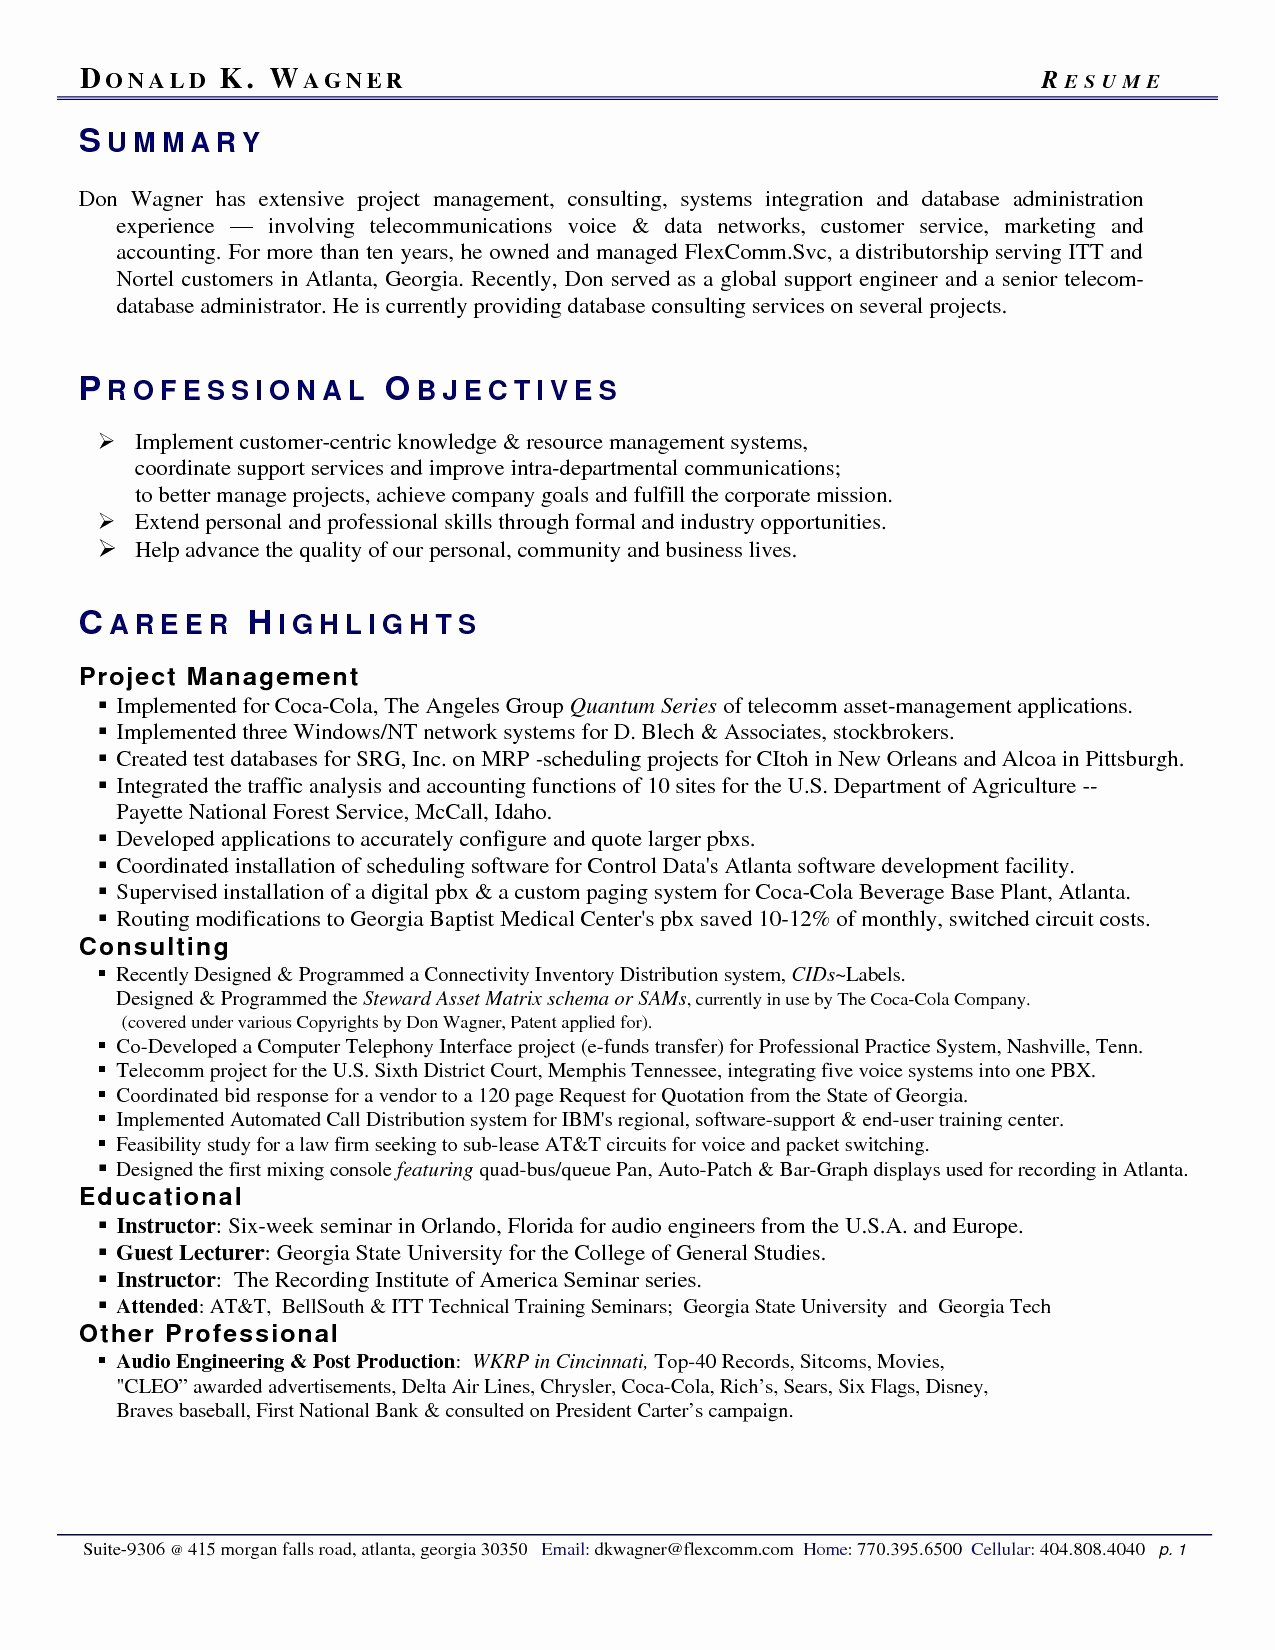 Customer Service Summary Resume Summary Examples for